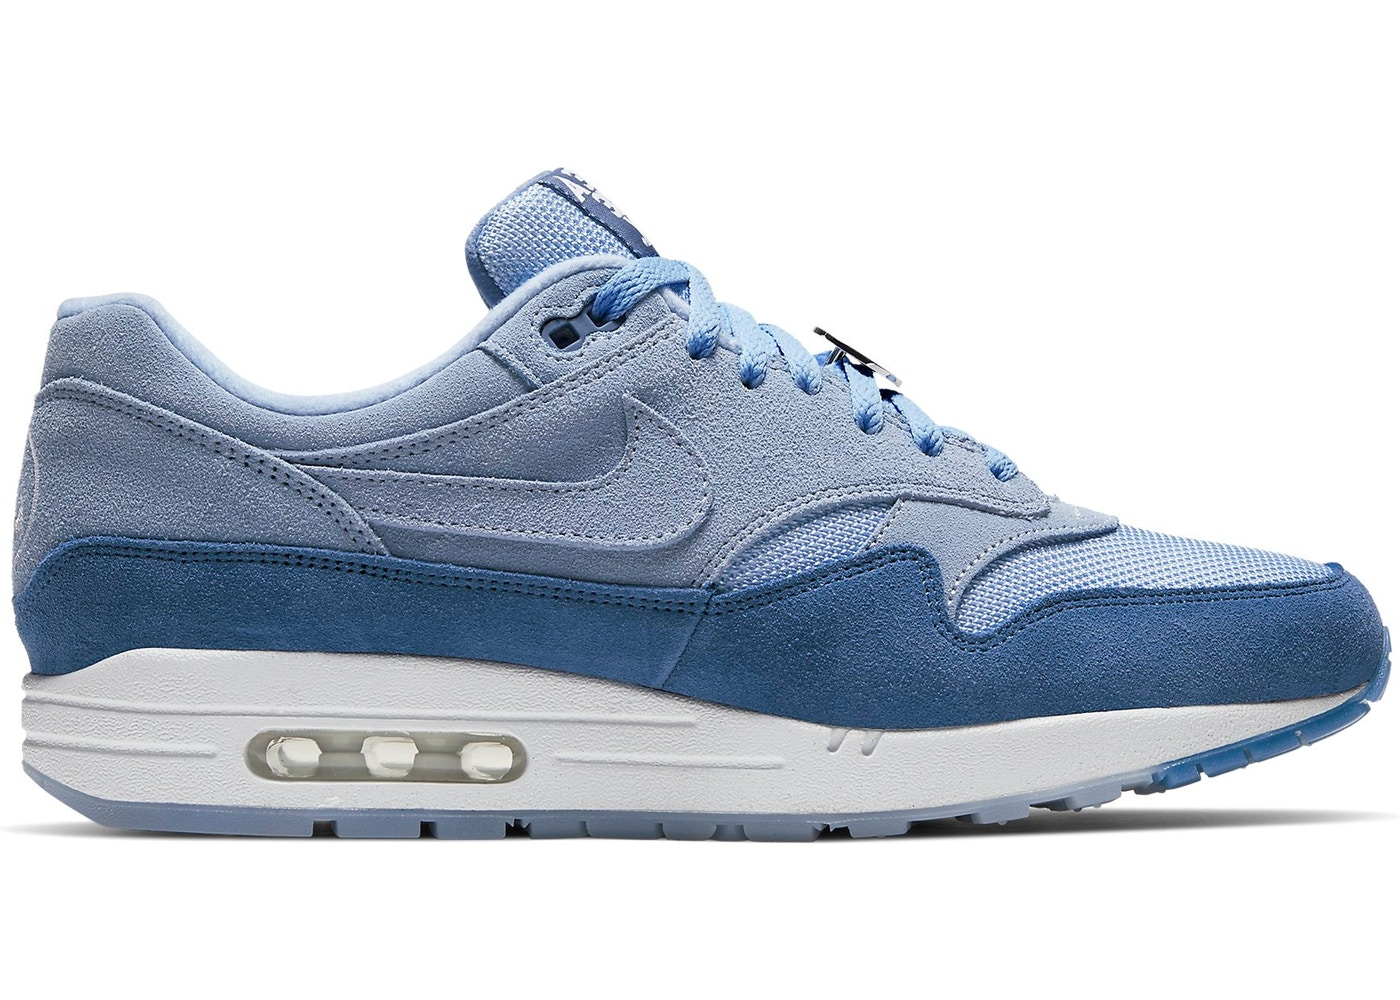 on sale 969ac 0bc25 Air Max 1 Have a Nike Day Indigo Storm - BQ8929-400